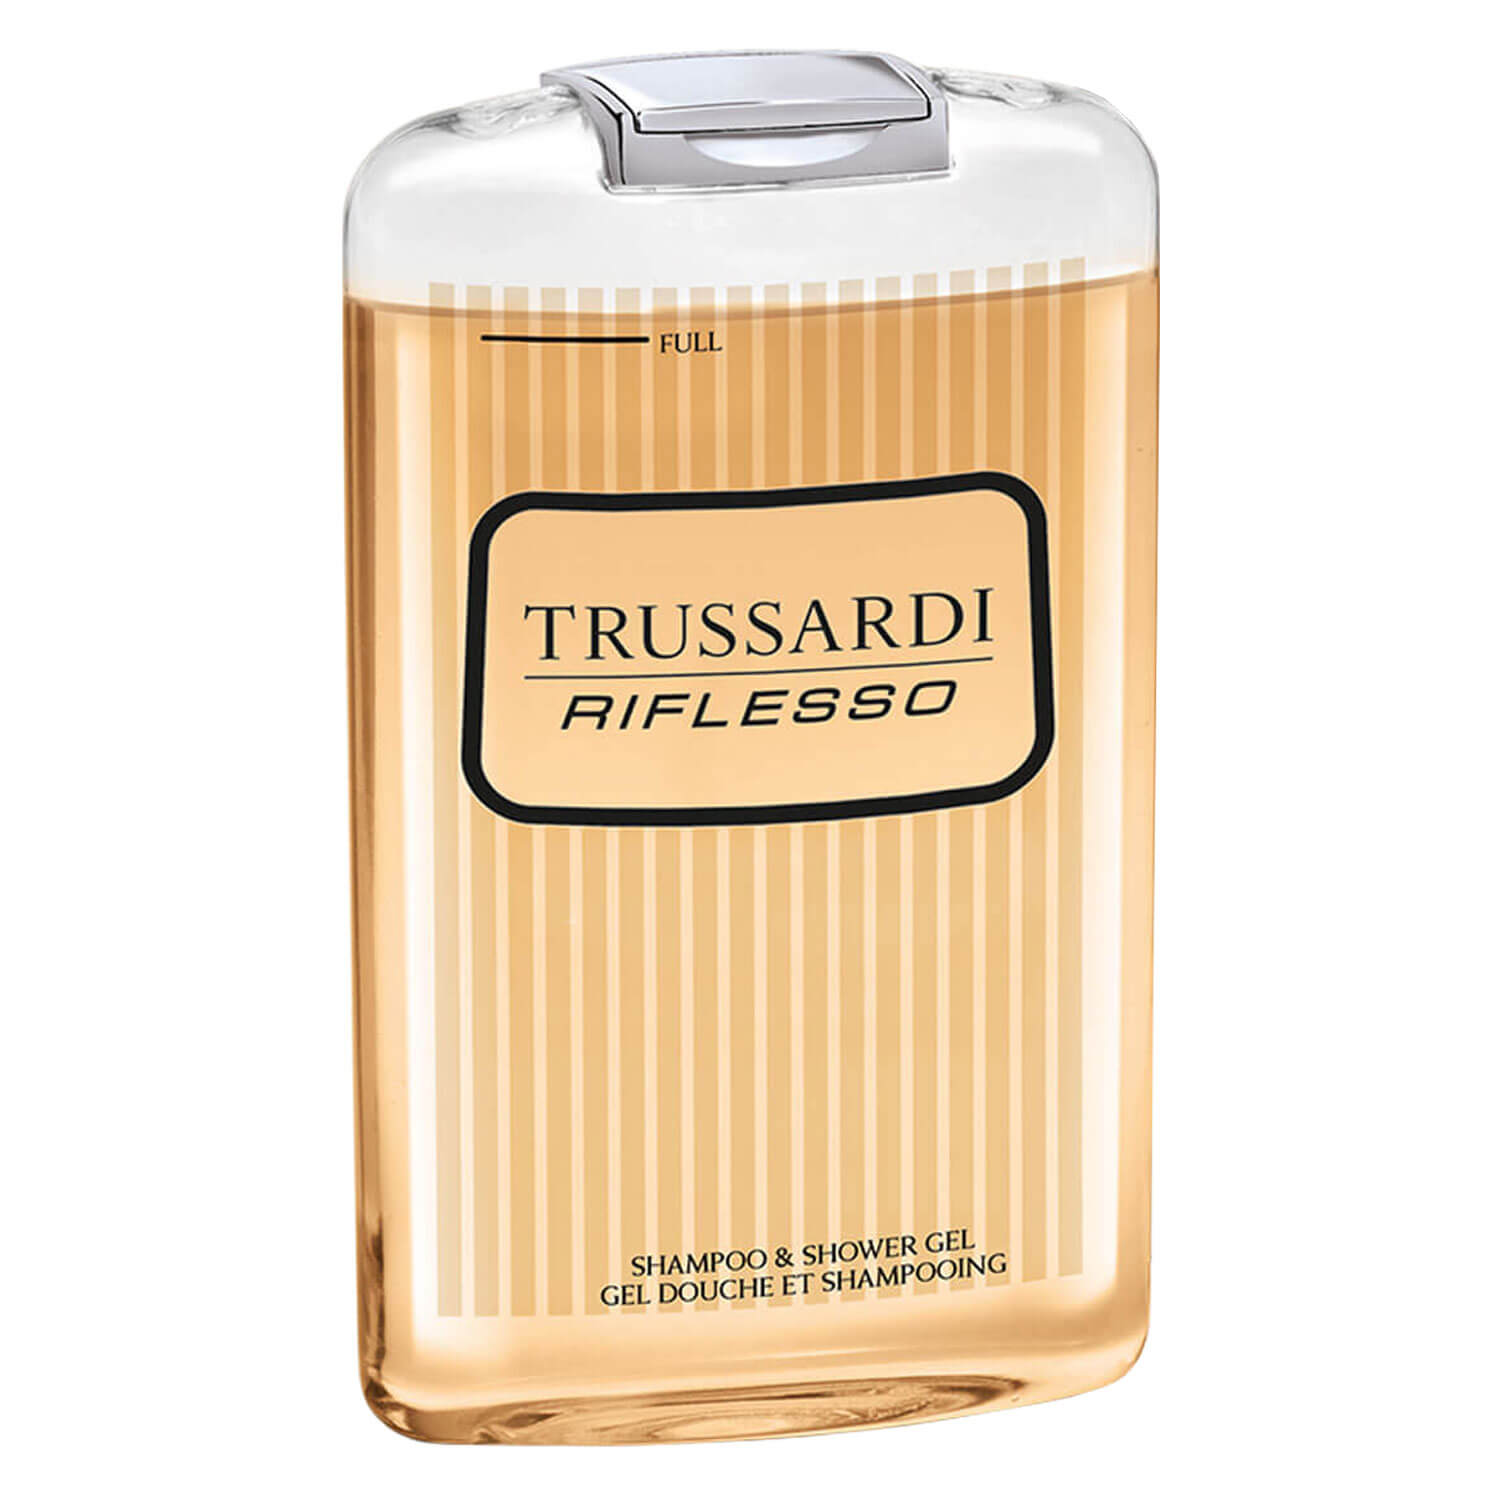 Riflesso - Shampoo & Shower Gel